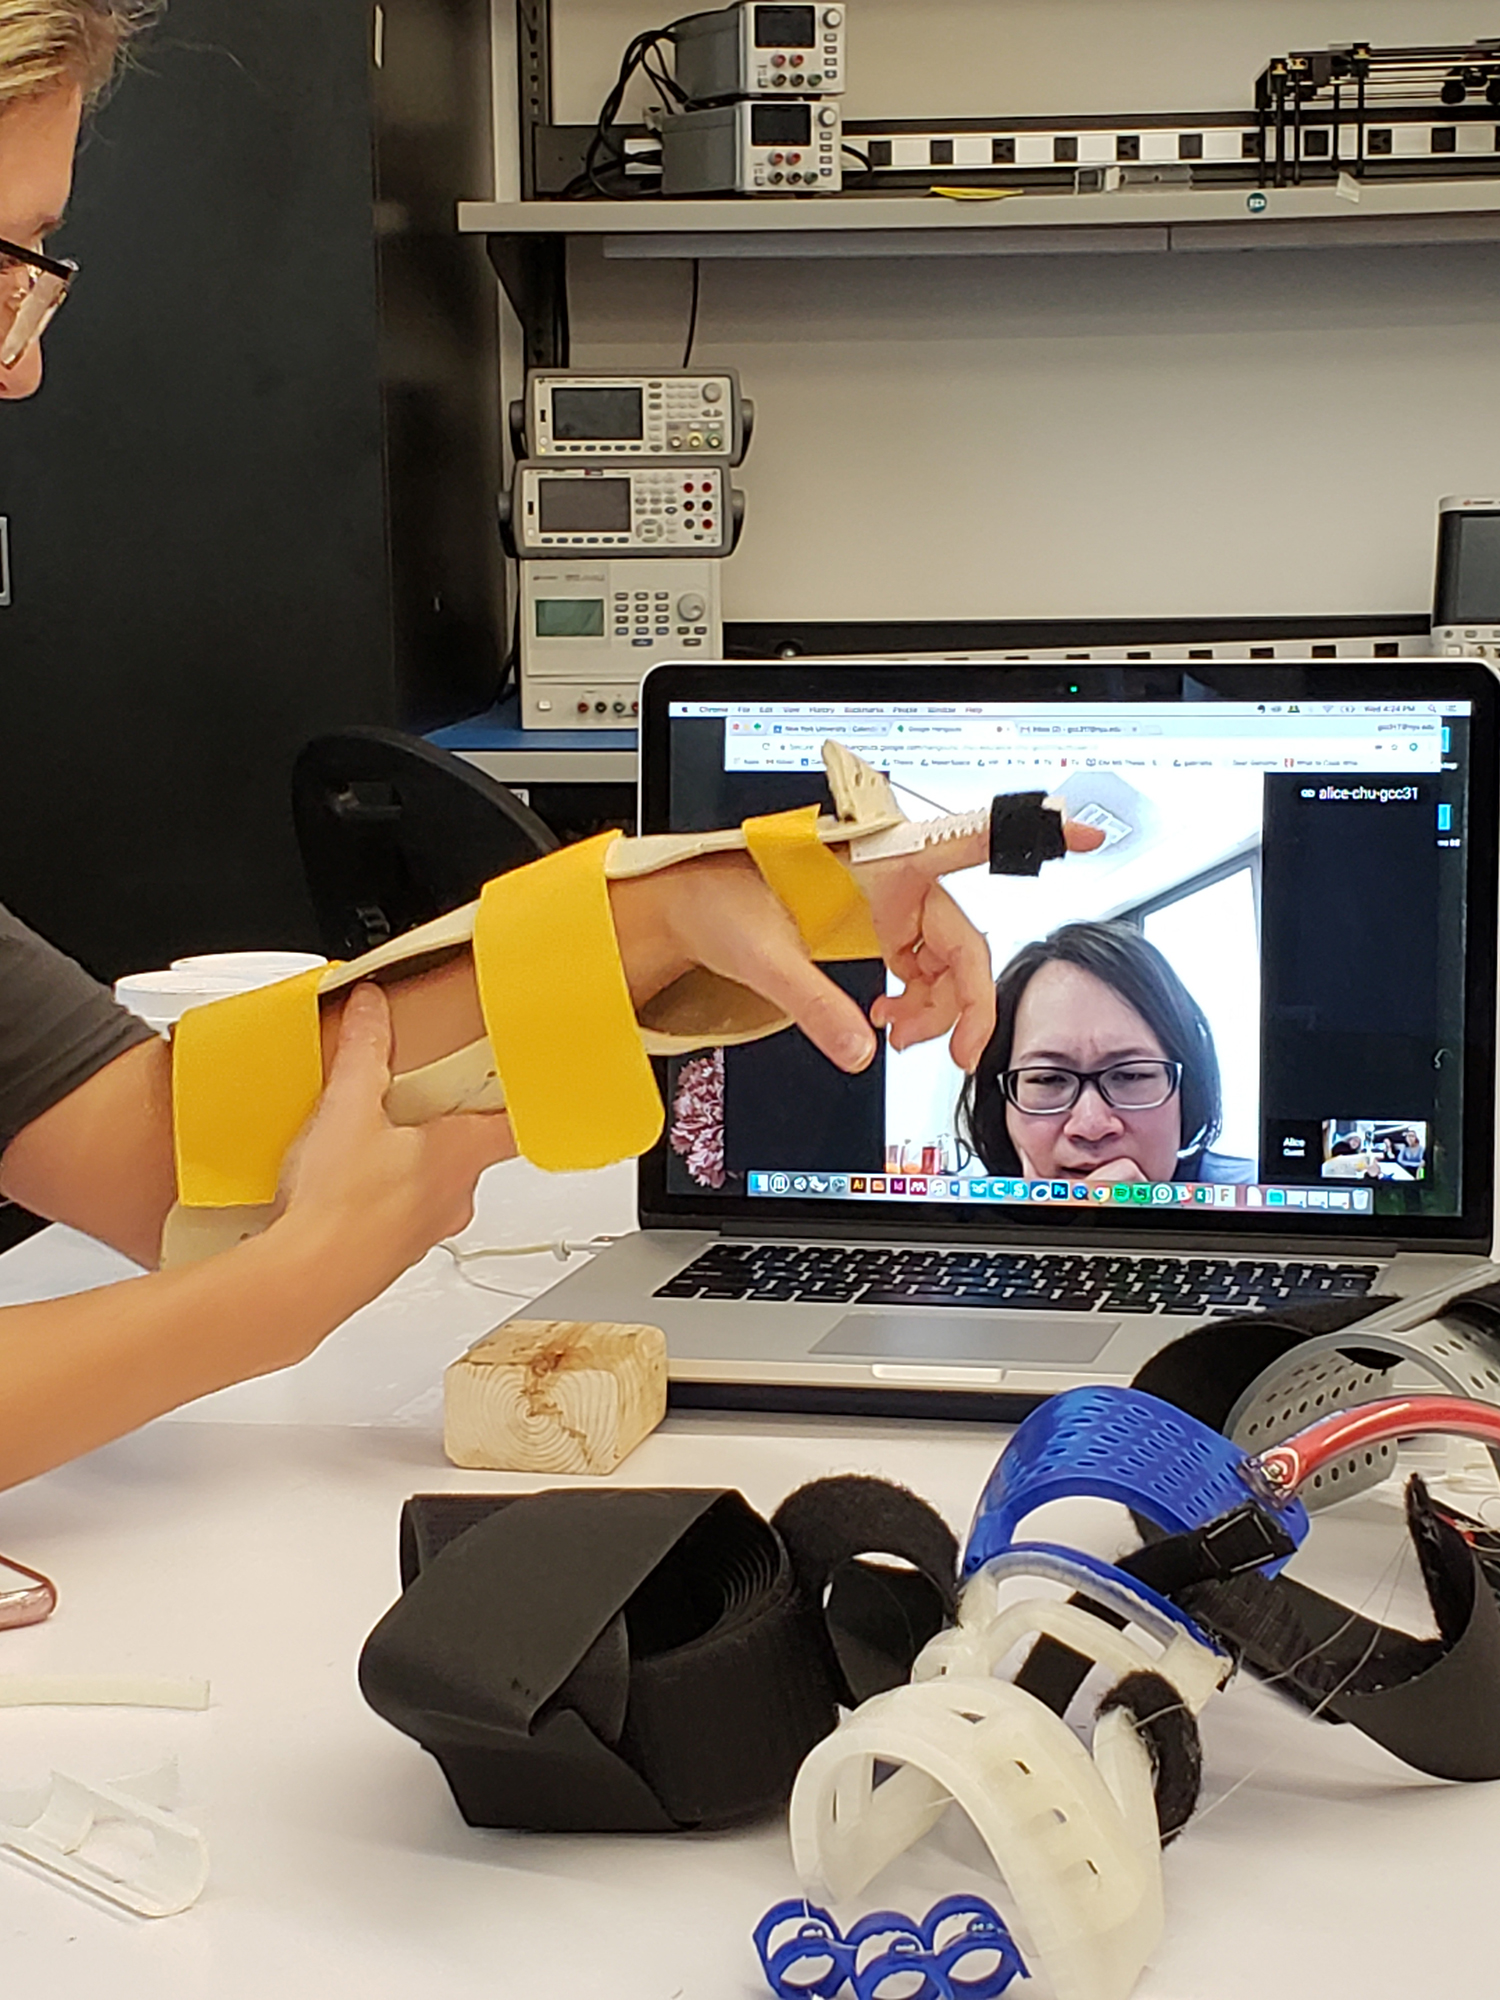 a researcher wearing a prototype brace while video chatting with a remote colleague via laptop